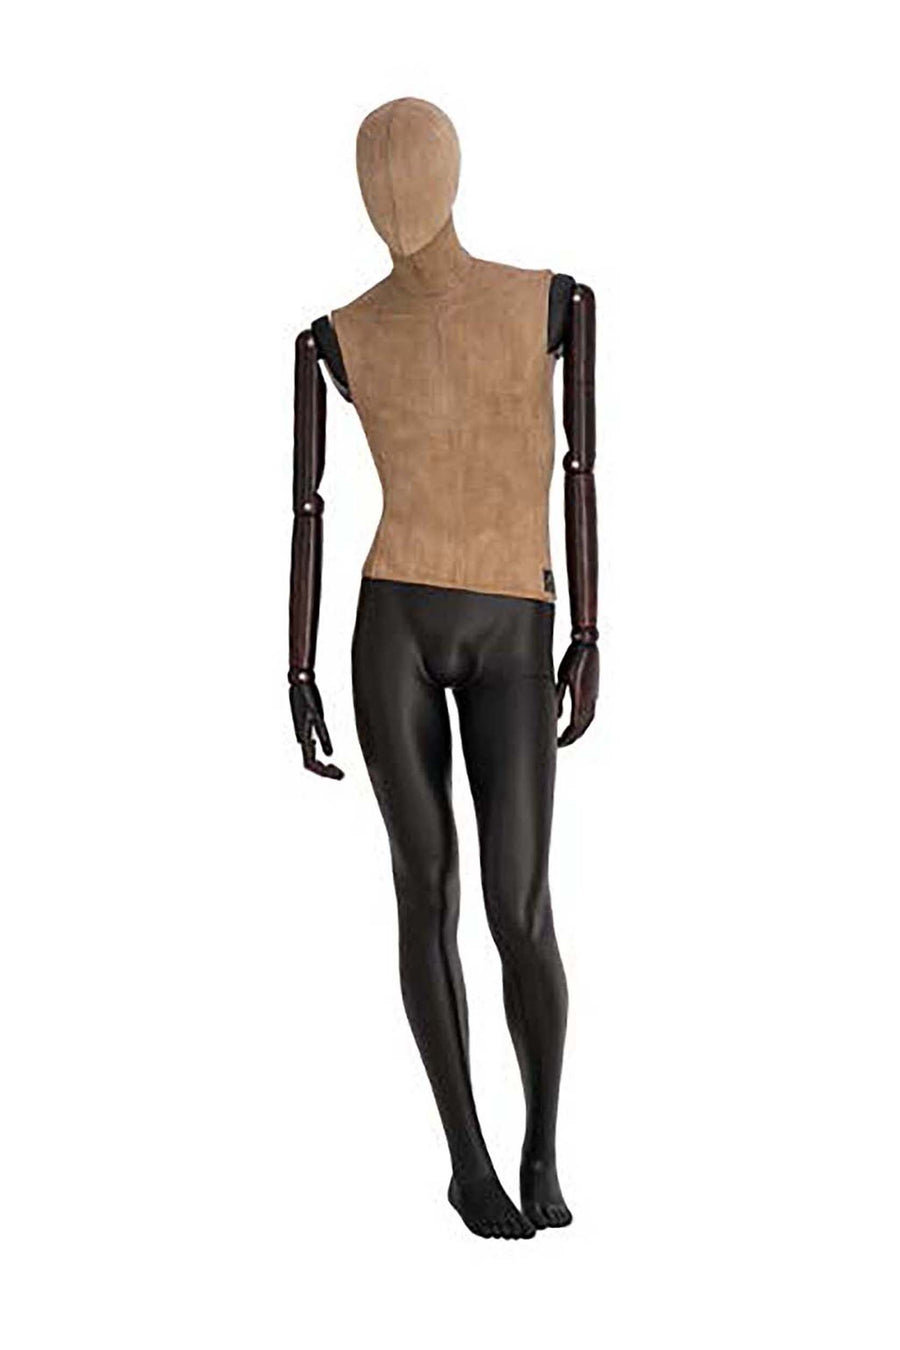 male mannequin with a weathered cotton covered torso and head, dark wood arms, and jet black legs